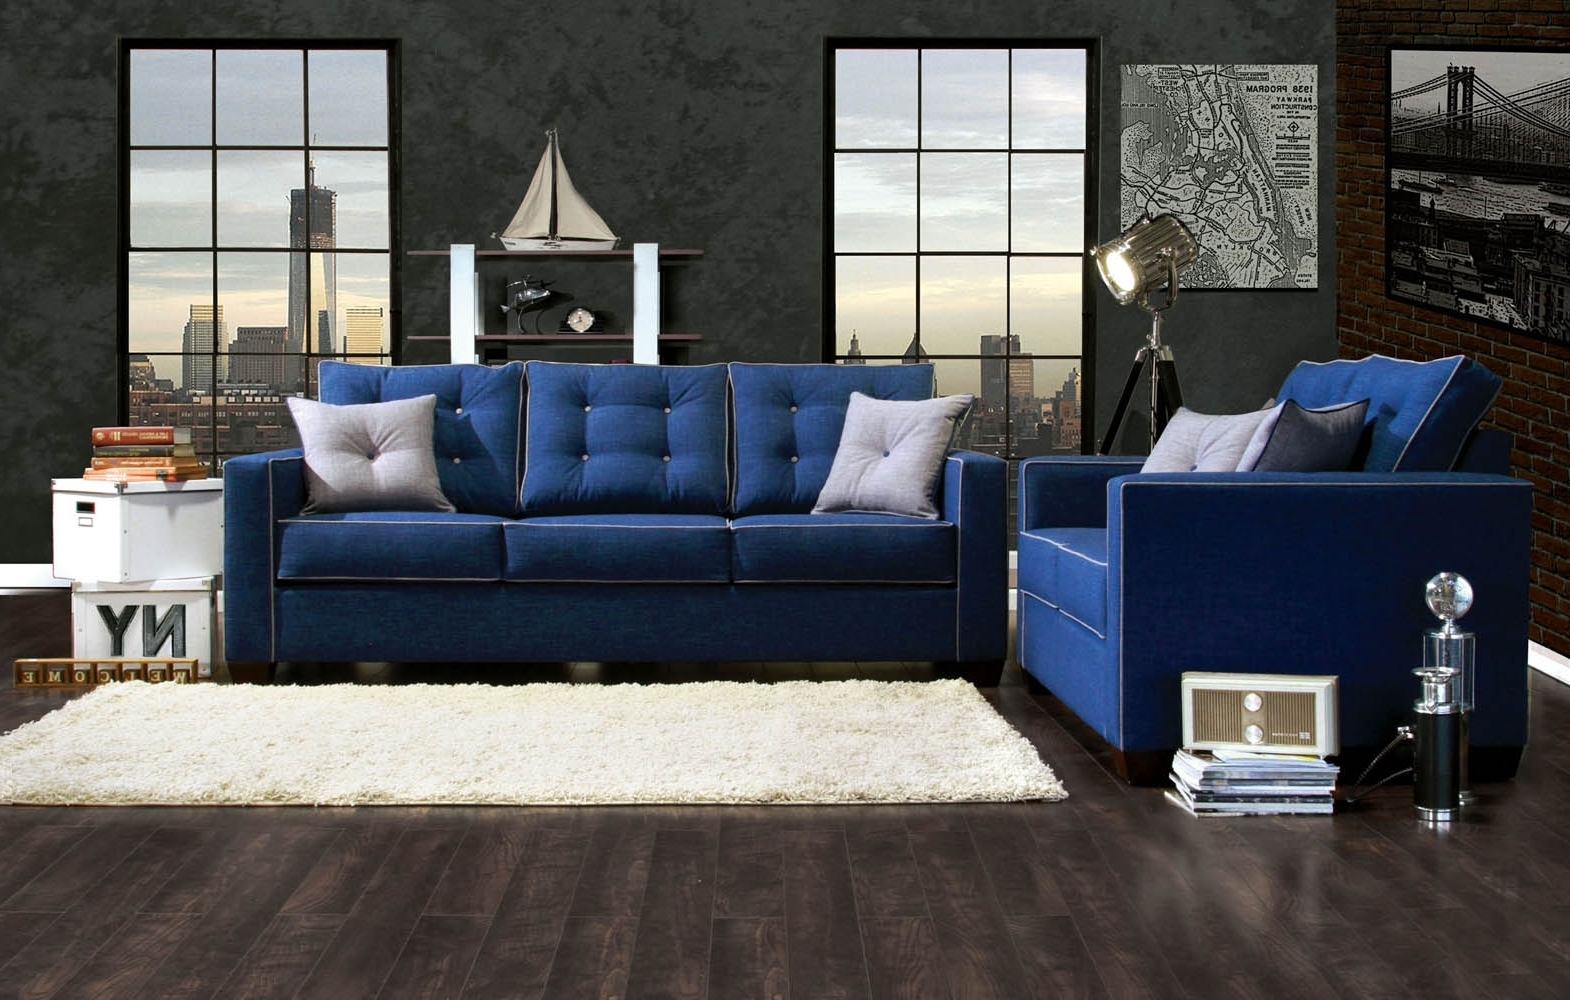 Most Recent Dark Blue Sofas Intended For Blue Sofa Living Room Ideas With Wall Brick Decor And Dark Wooden (Gallery 11 of 20)